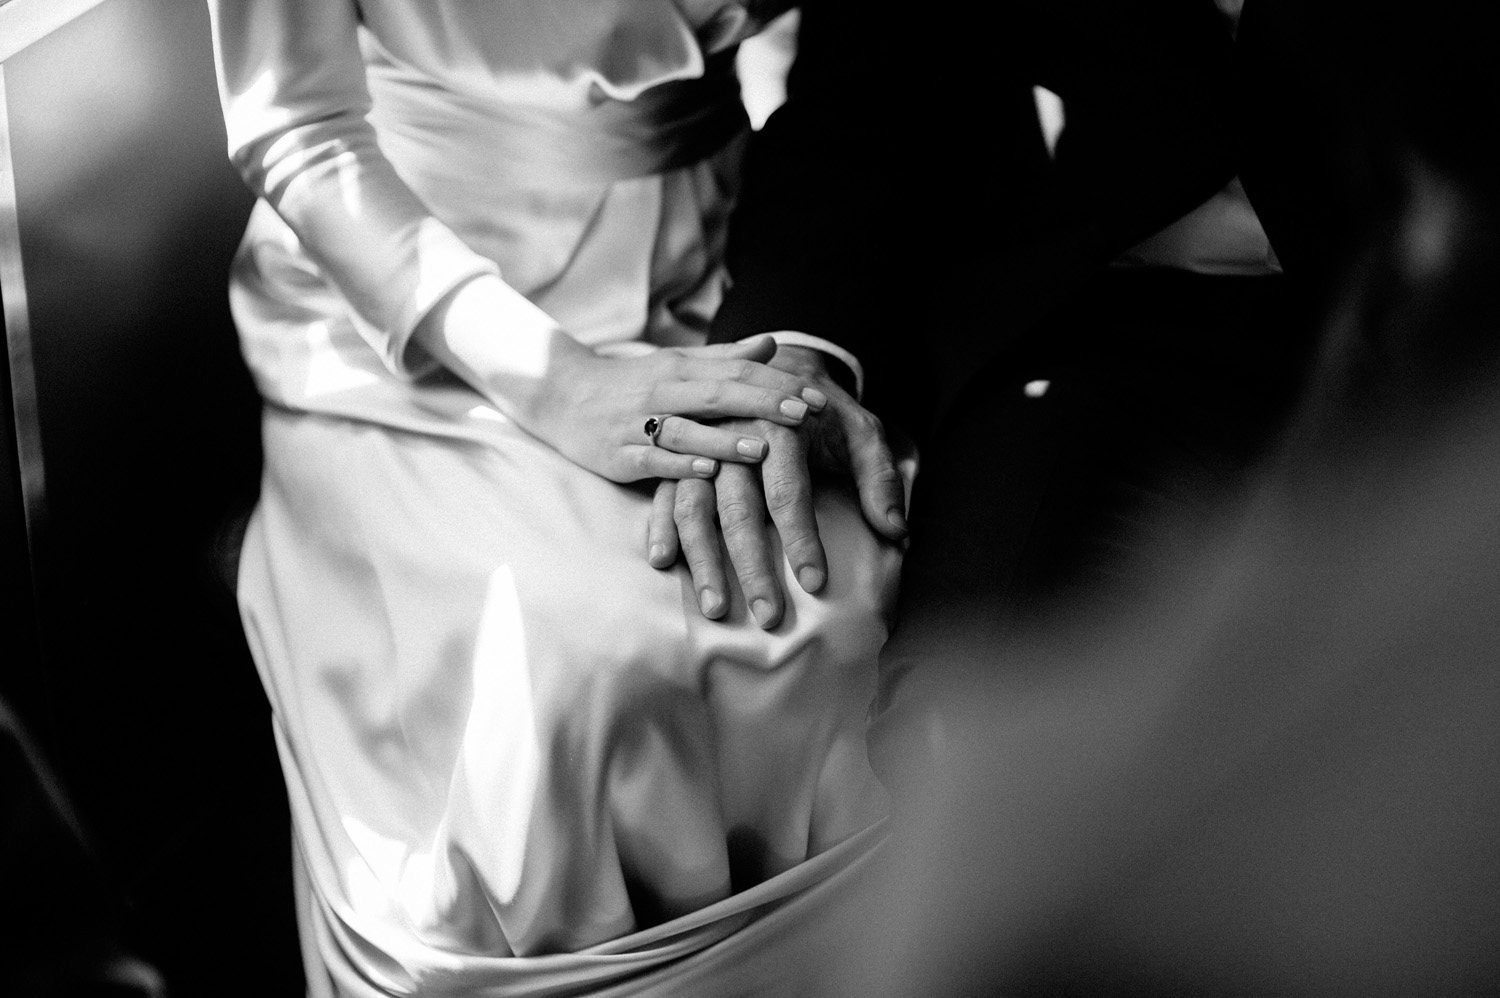 bride and groom tenderly touch hands in a wedding day detail photograph in black and white